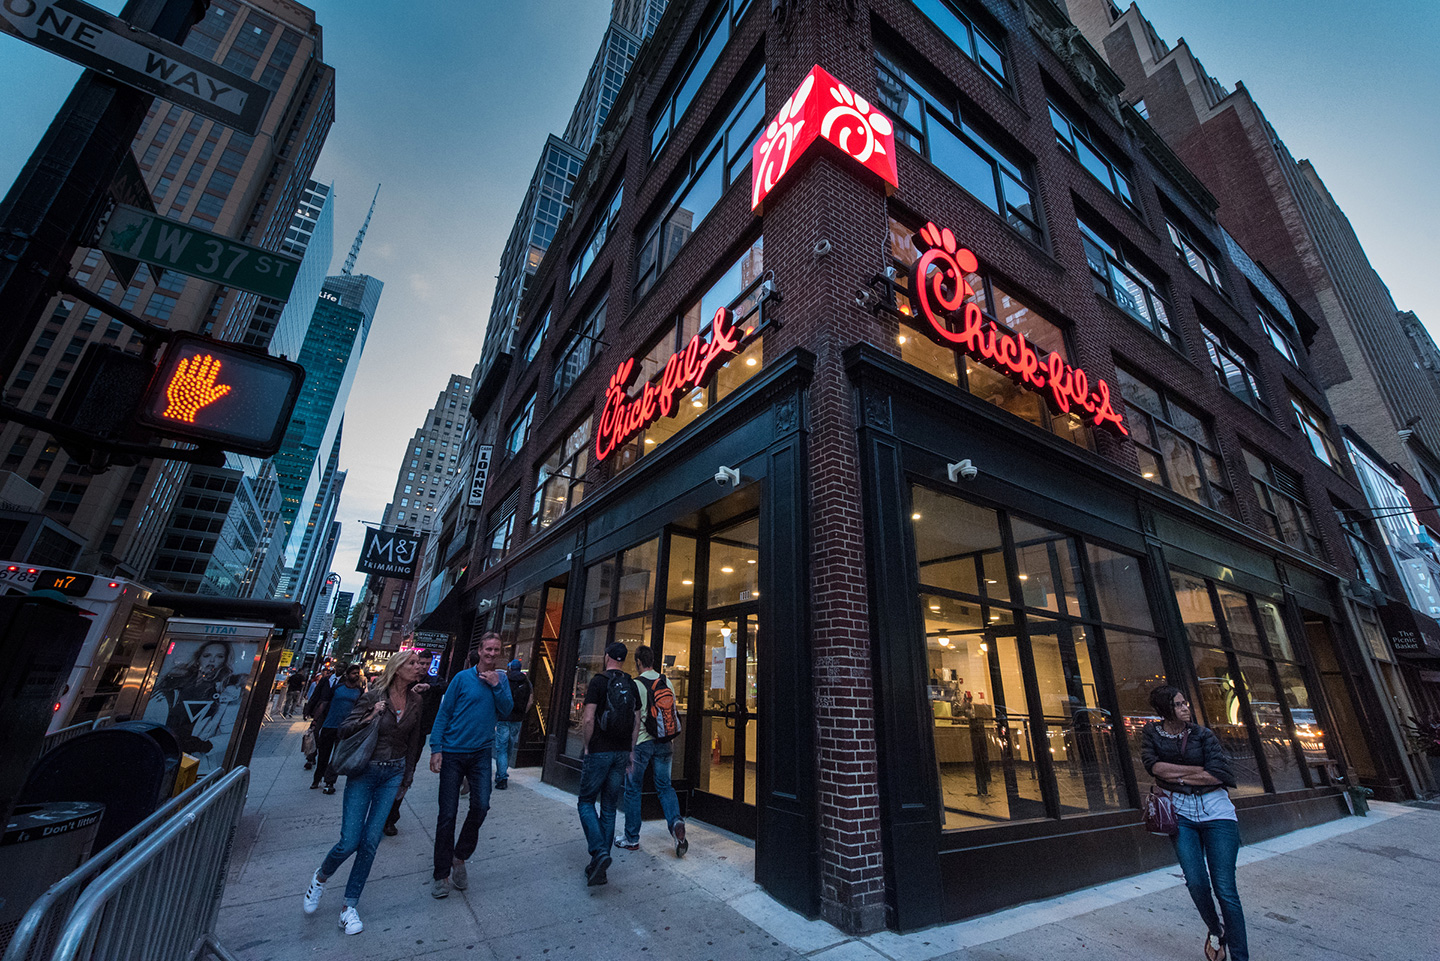 What It Takes To Set Up Shop In New York City Chick Fil A